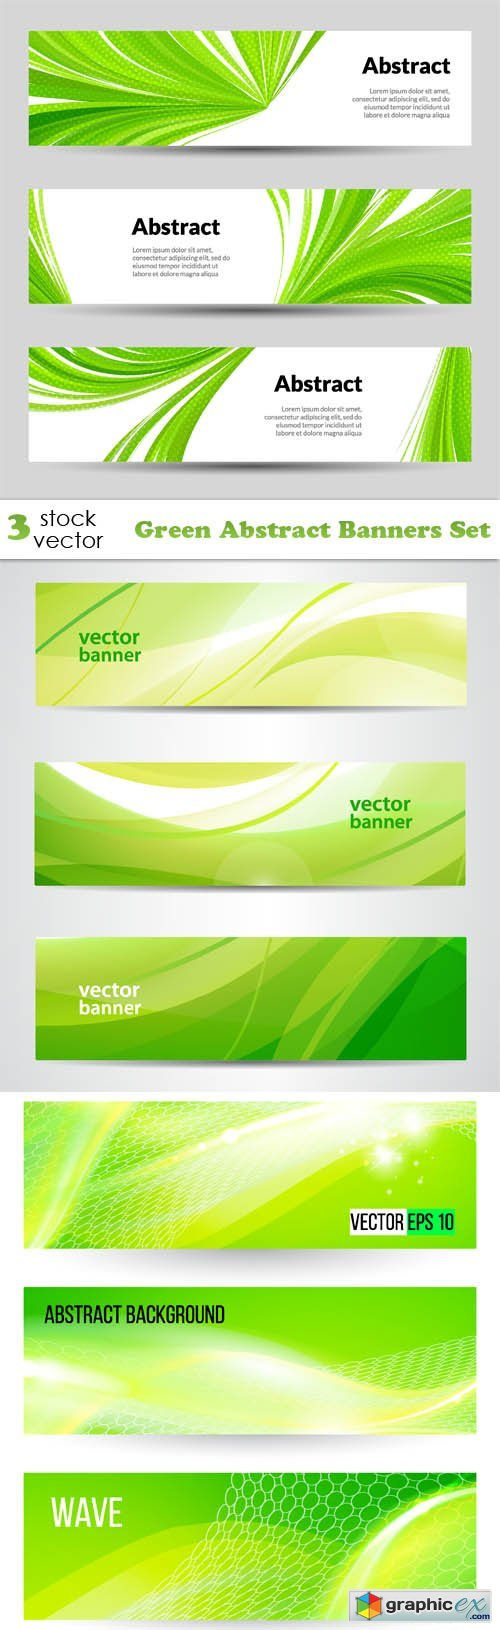 Green Abstract Banners Set